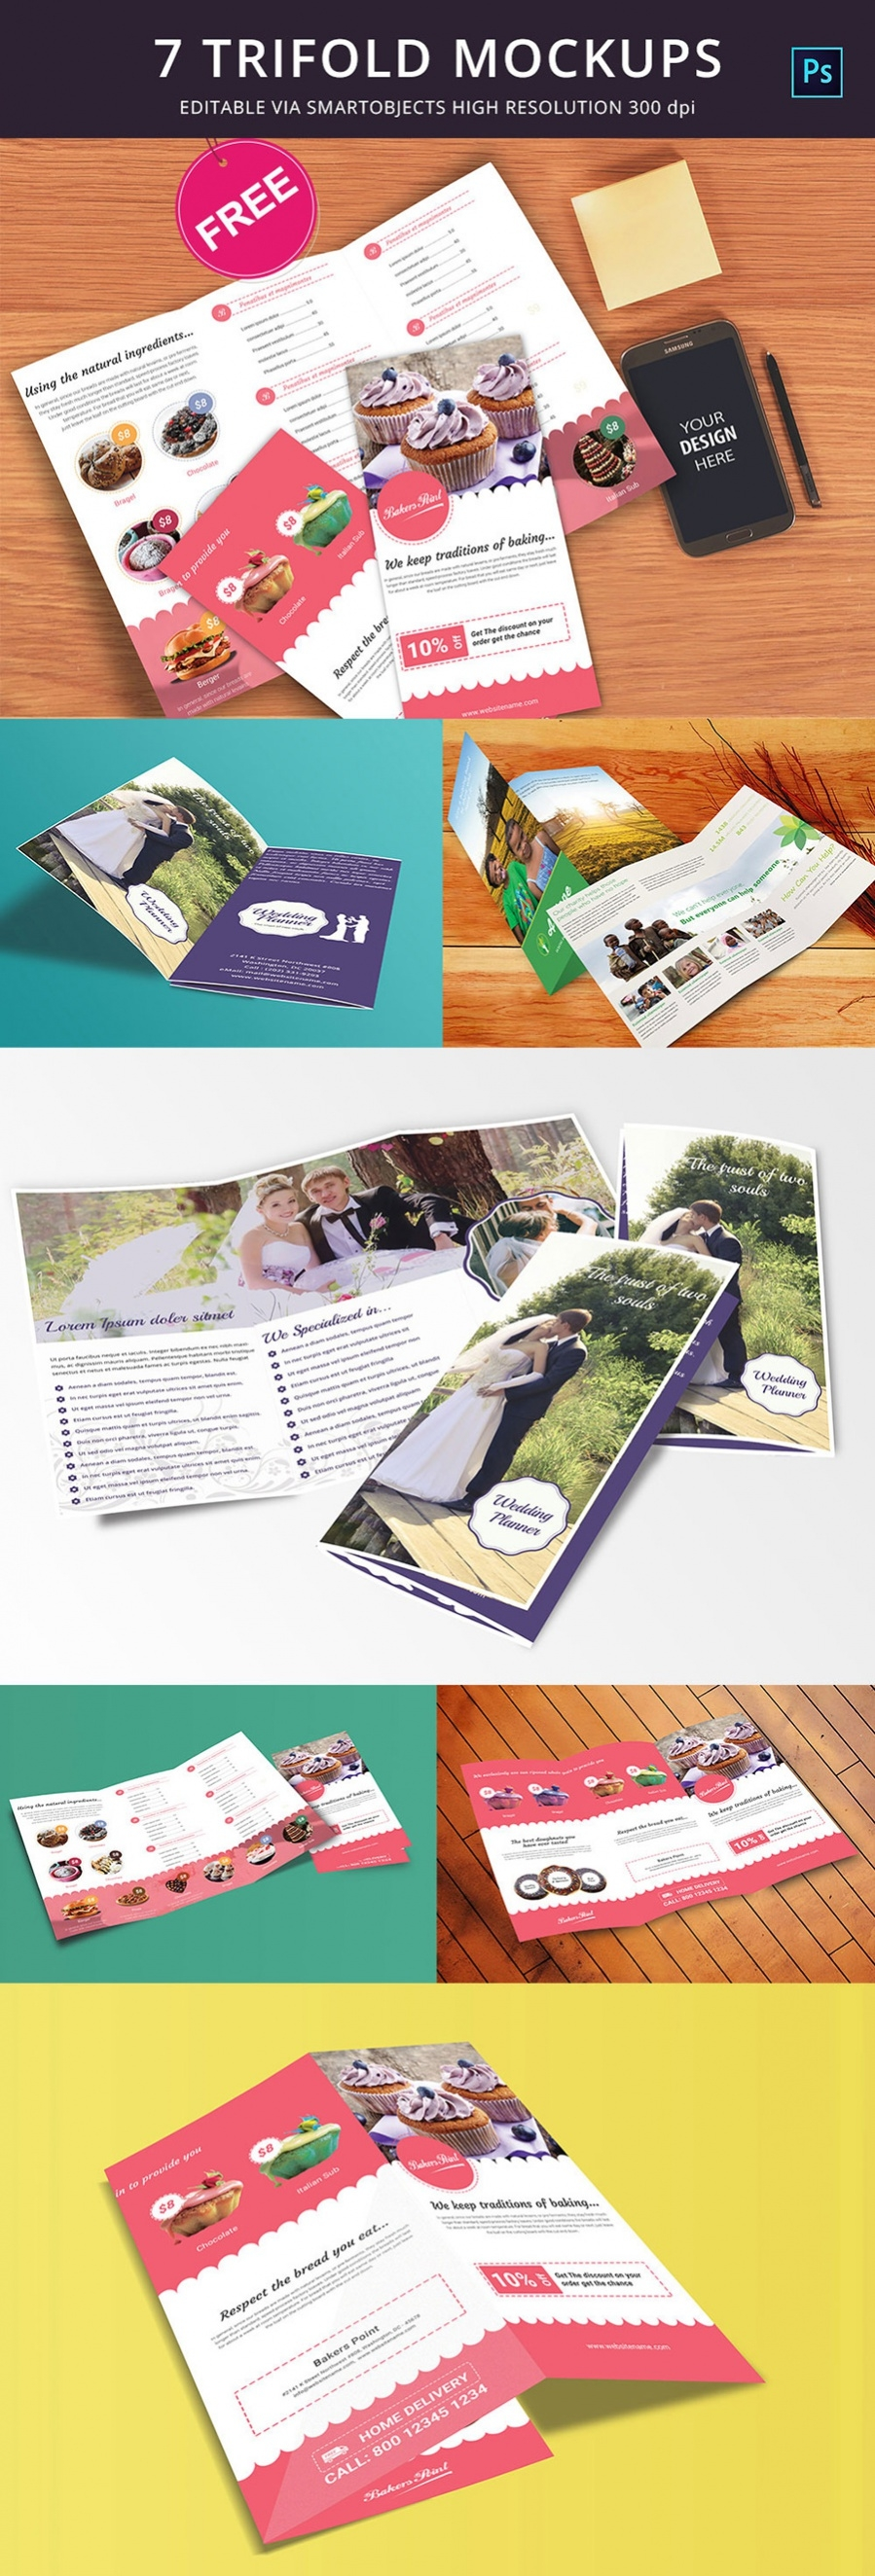 downloadable free trifold mockup